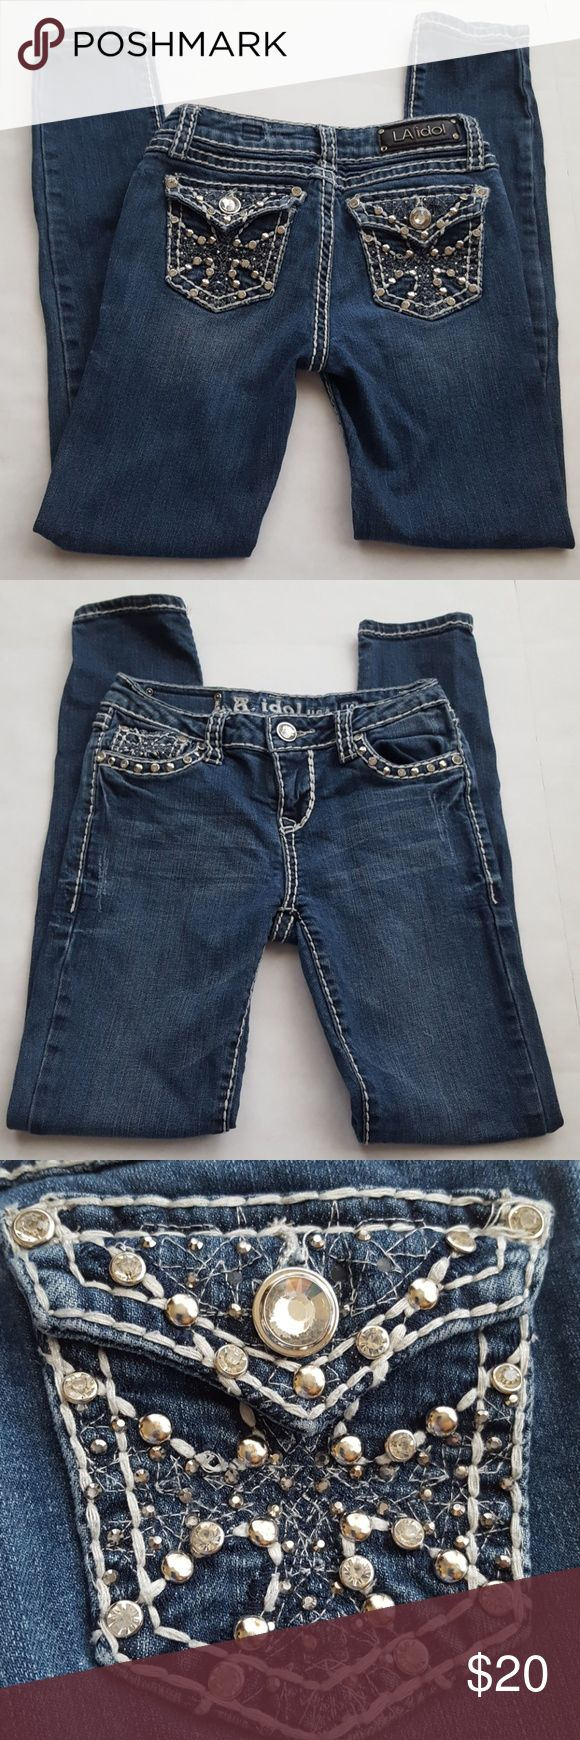 LA Idol Fancy Pockets Bling Blue Jeans LA Idol Jeans are super cute. Lots of bling on the pockets to separate yourself from the crowd. White stitching gives them extra pop. Excellent Used Condition L.A. Idol Bottoms Jeans